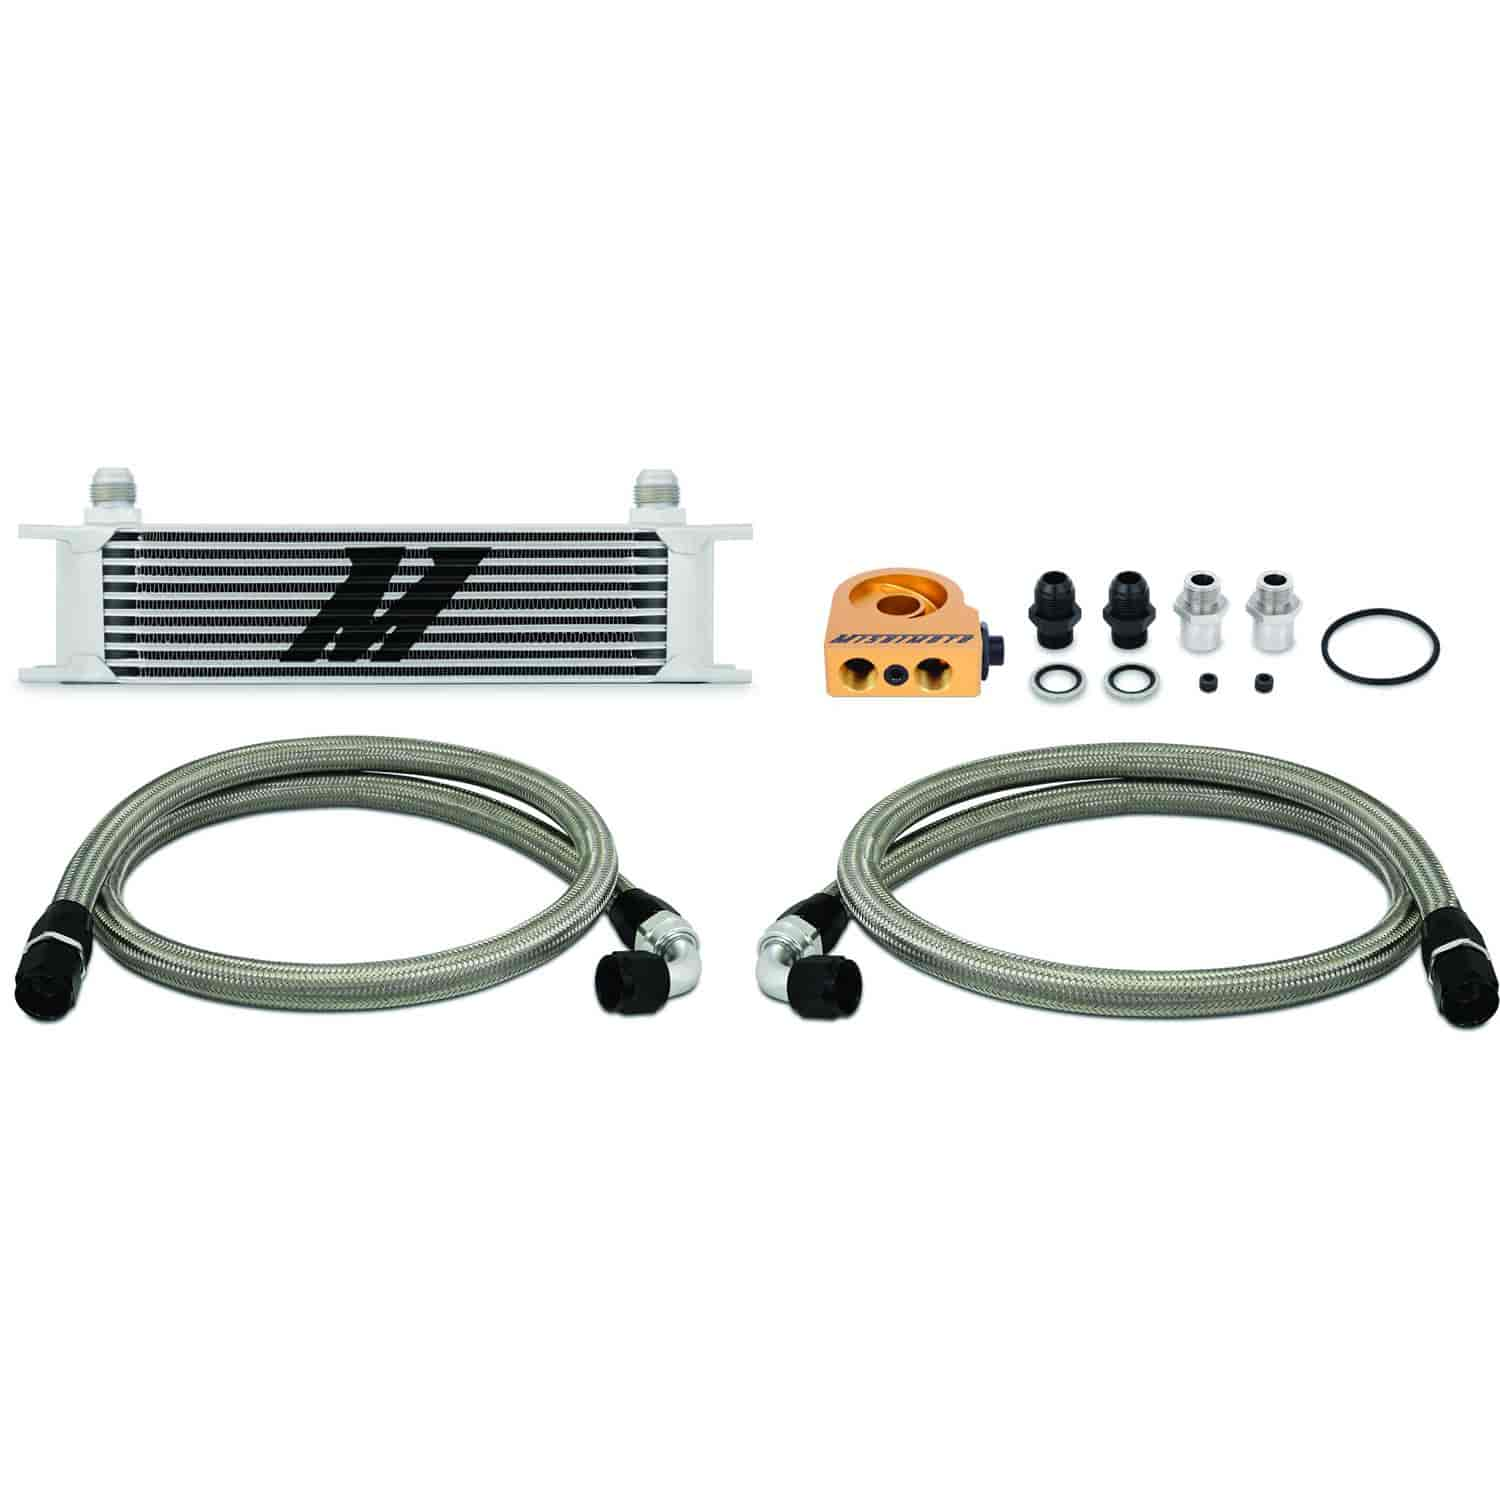 Derale 51006 10 Row Core Stacked Plate Cooler Kit